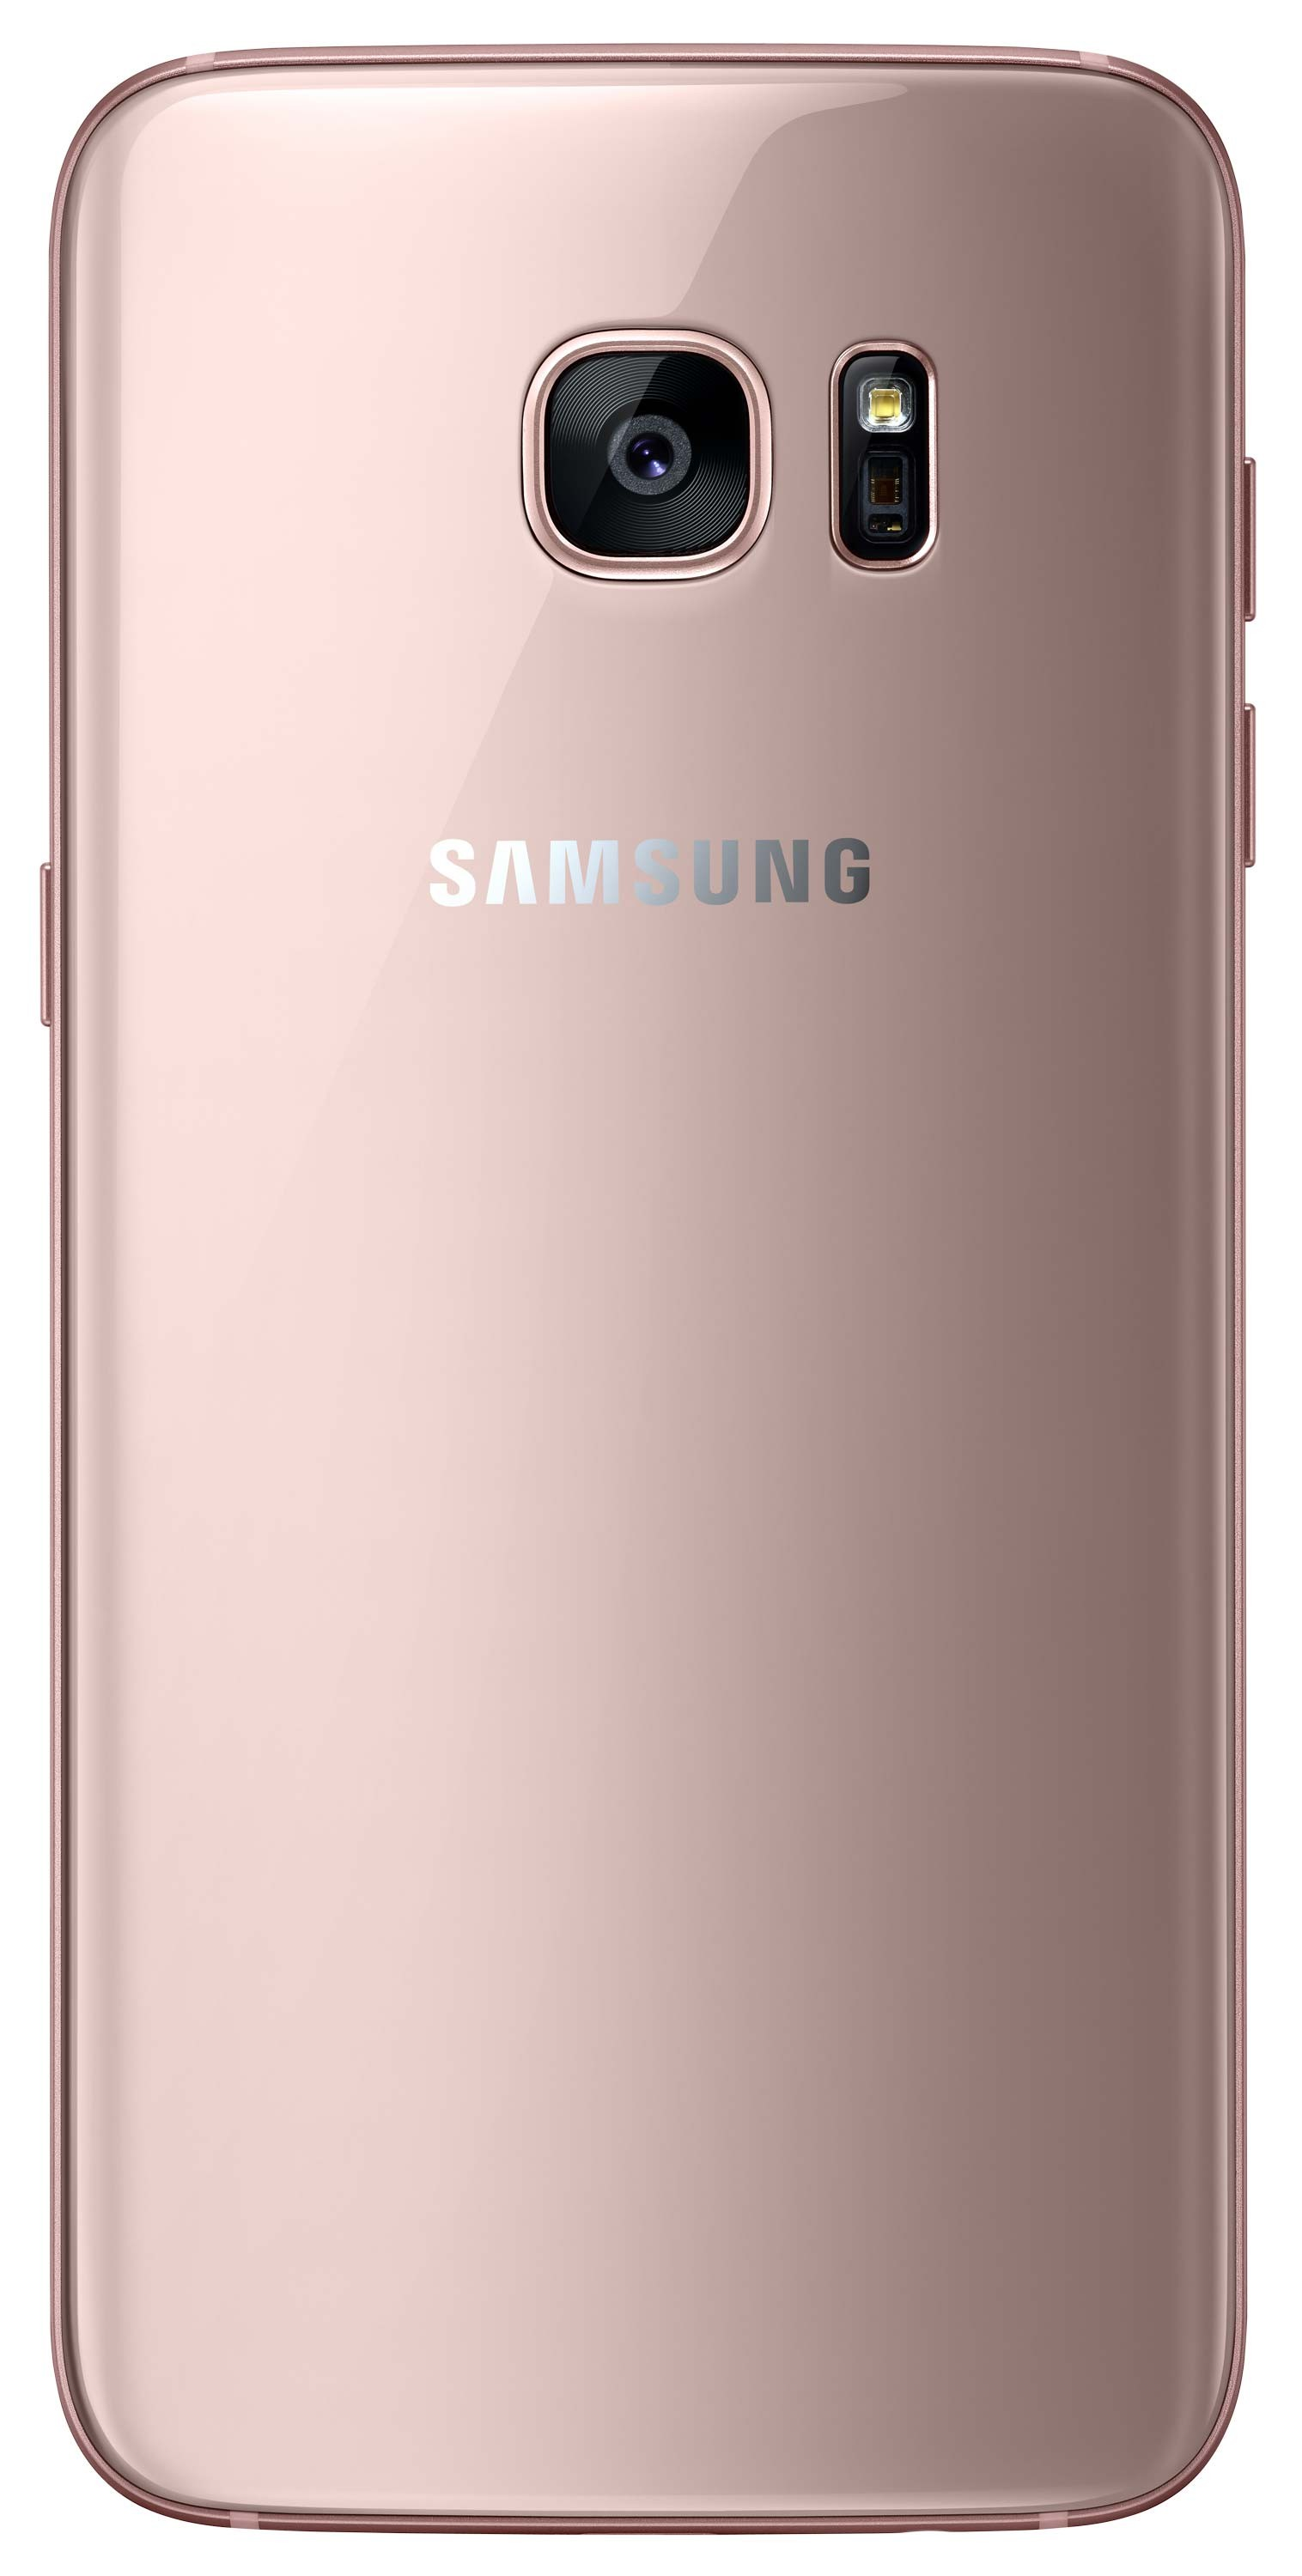 Samsung - Galaxy S7 Edge 32 Go Rose - 5.5 pouces - Android 6.0